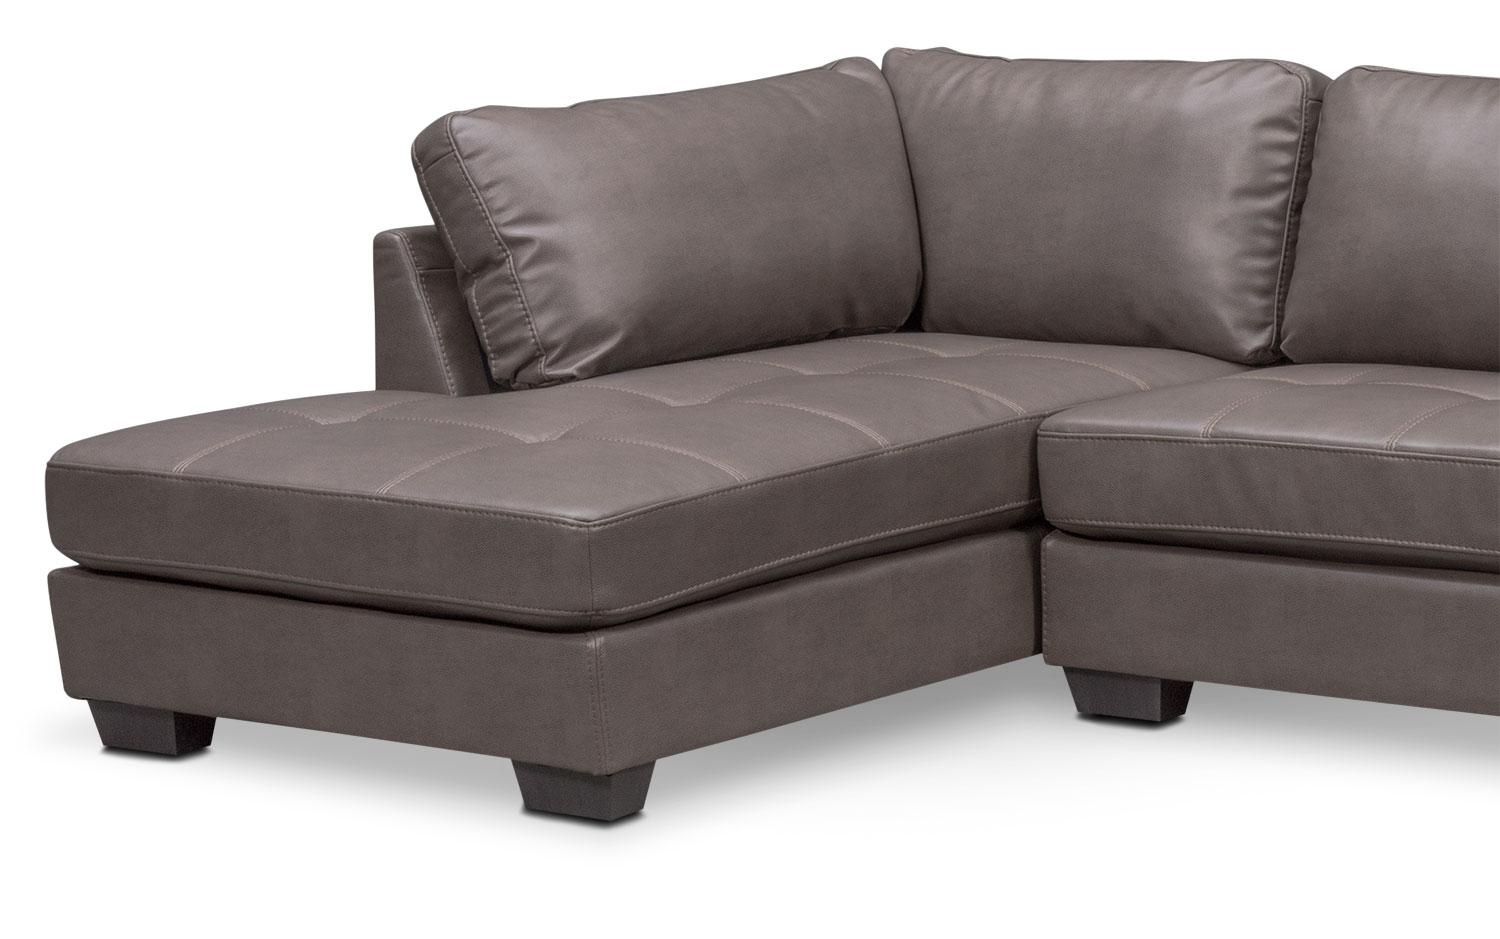 Santana 2 Piece Sectional With Left Facing Chaise – Gray Regarding Sectional With 2 Chaises (Image 12 of 20)